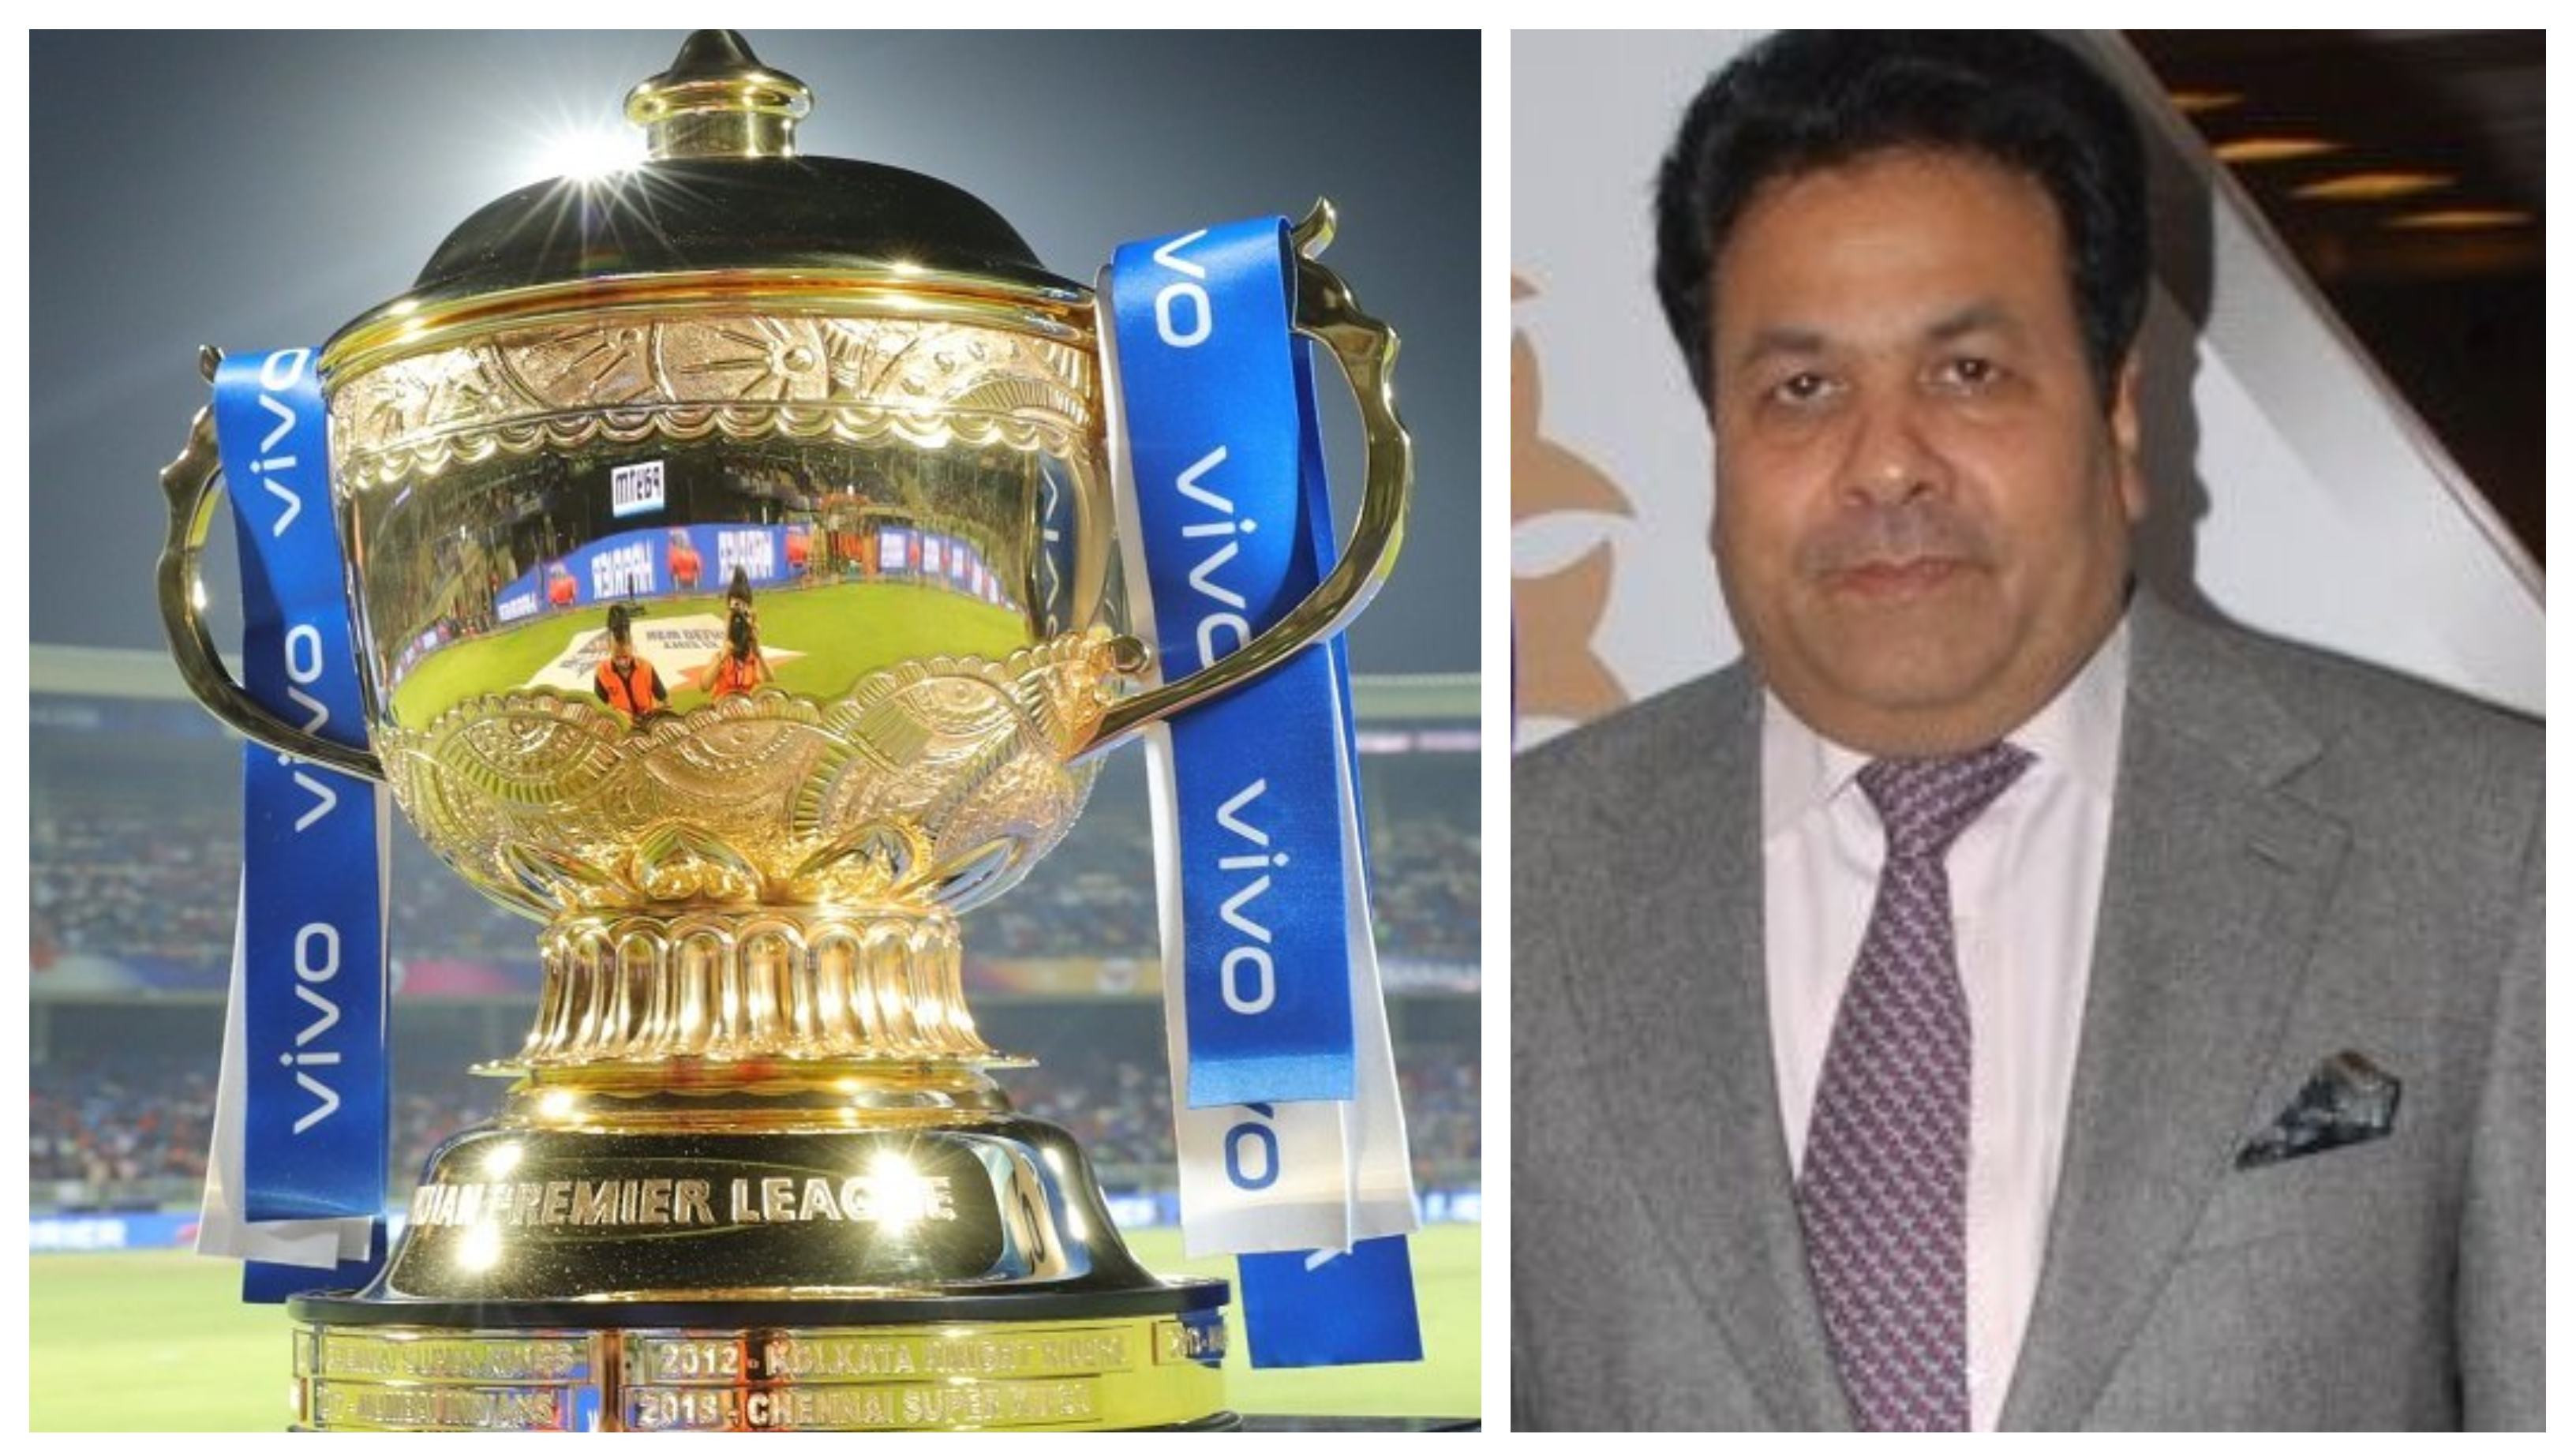 IPL 2021 has been suspended not cancelled, few players wanted to leave India: Rajeev Shukla